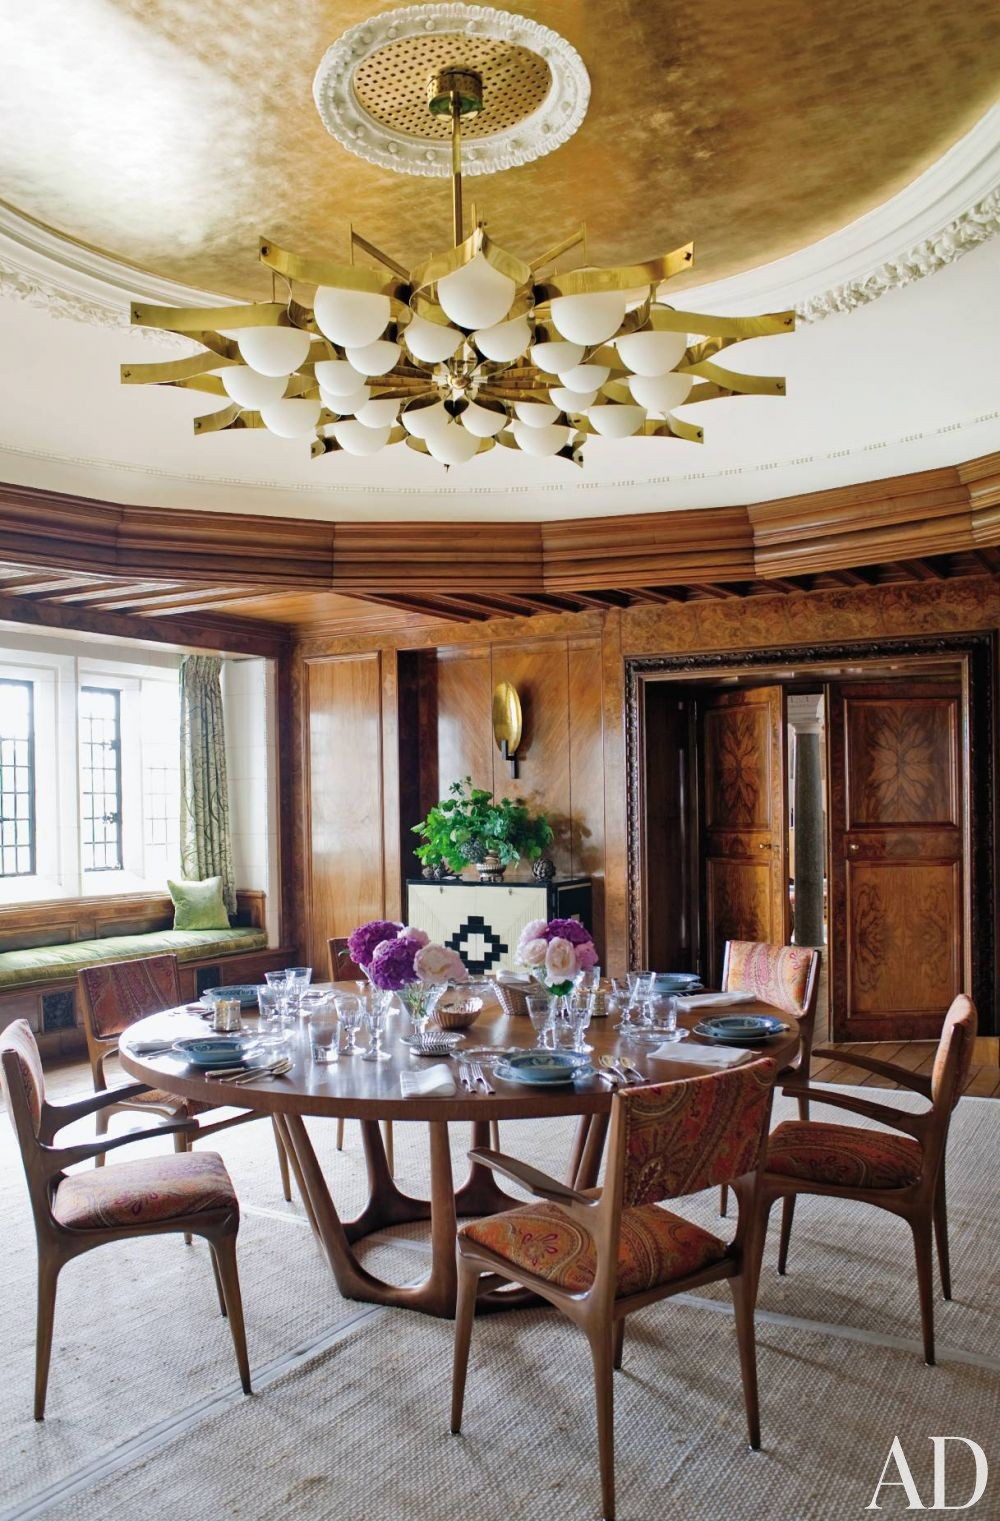 Contemporary Dining Room by Robert Couturier Inc. and Edwin Luytens in Hampshire, England